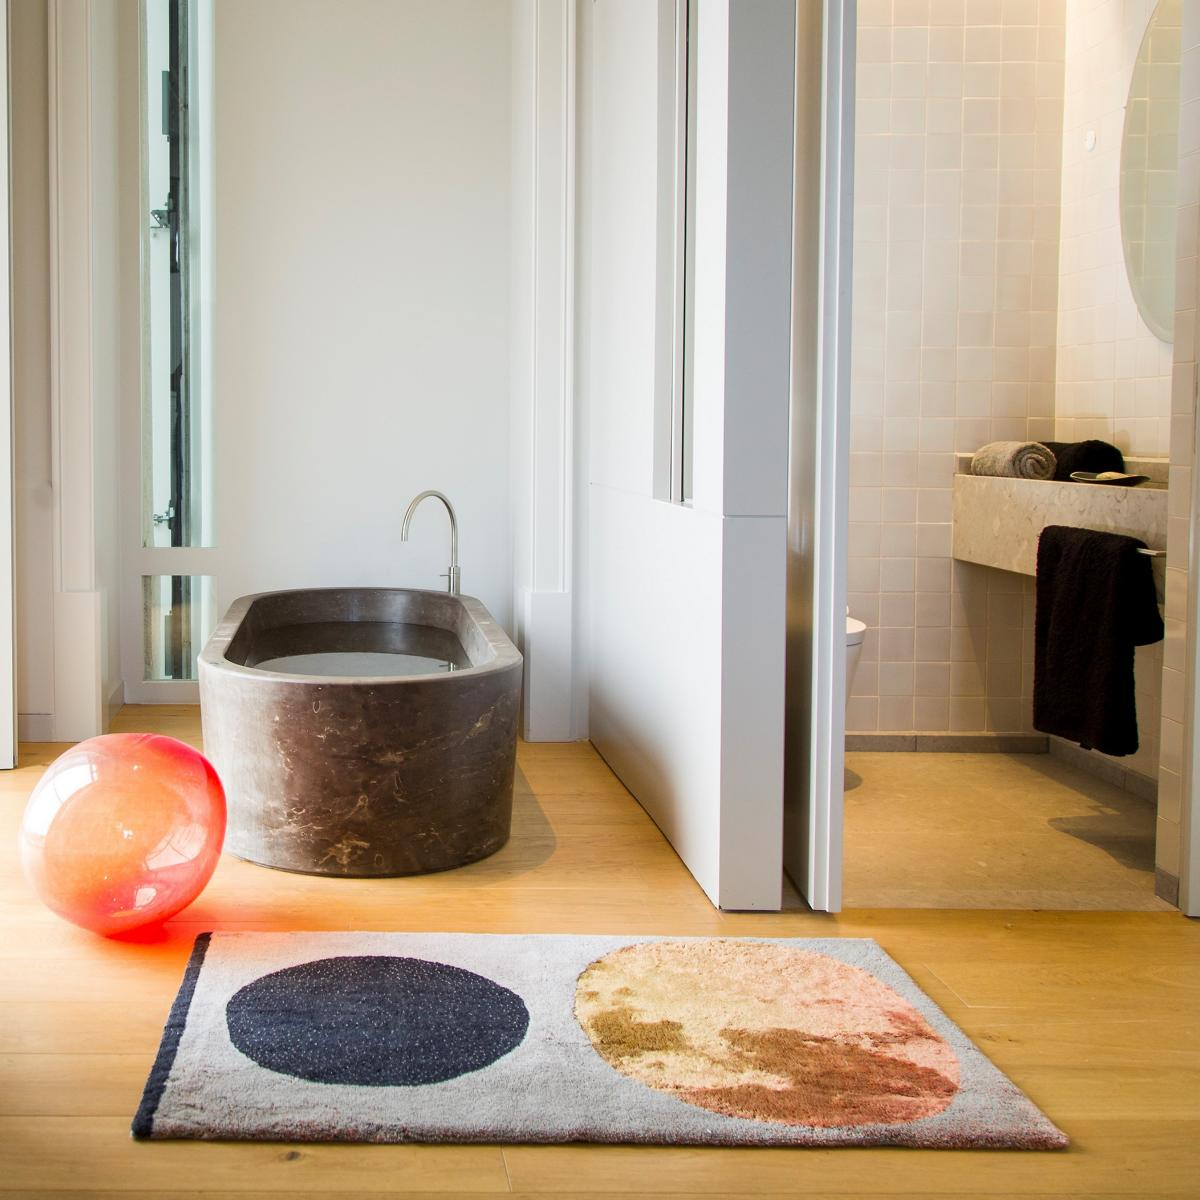 Uth home | Luxus Badezimmer